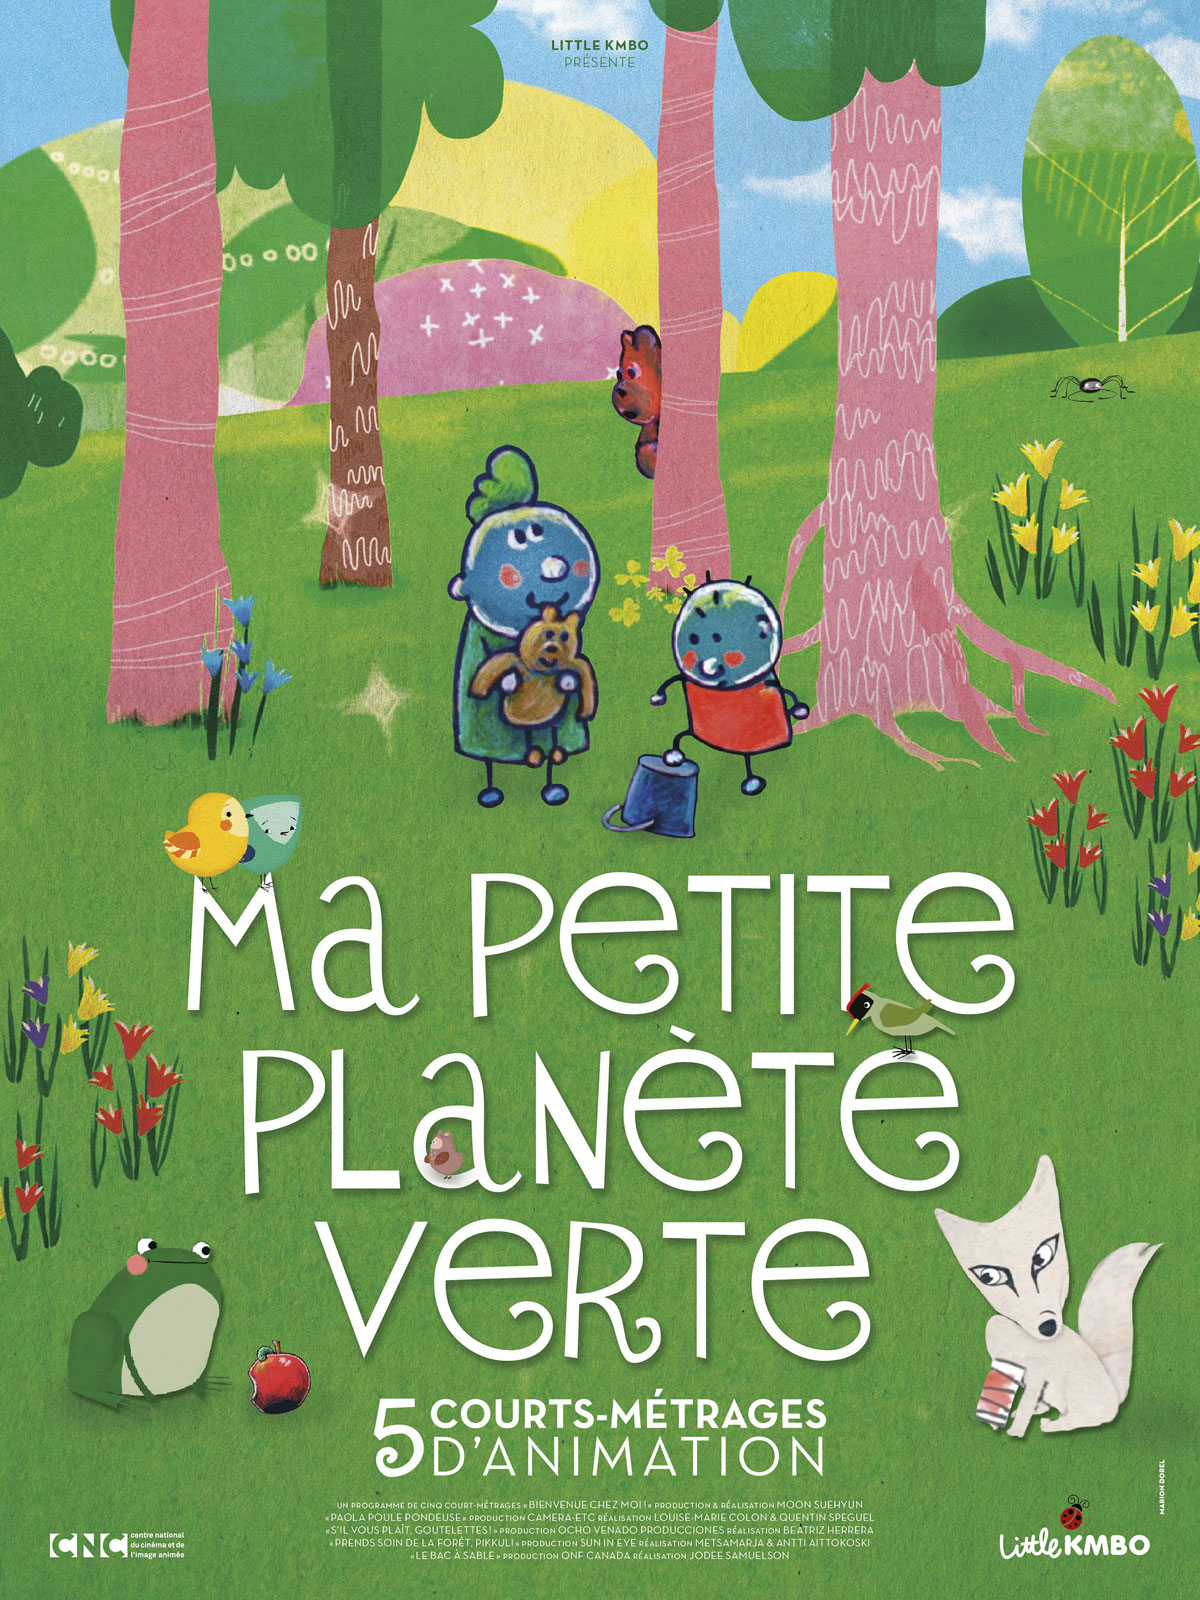 MA PETITE PLANÈTE VERTE - Affiche Film éducatif courts-métrages Little KMBO - Go with the Blog